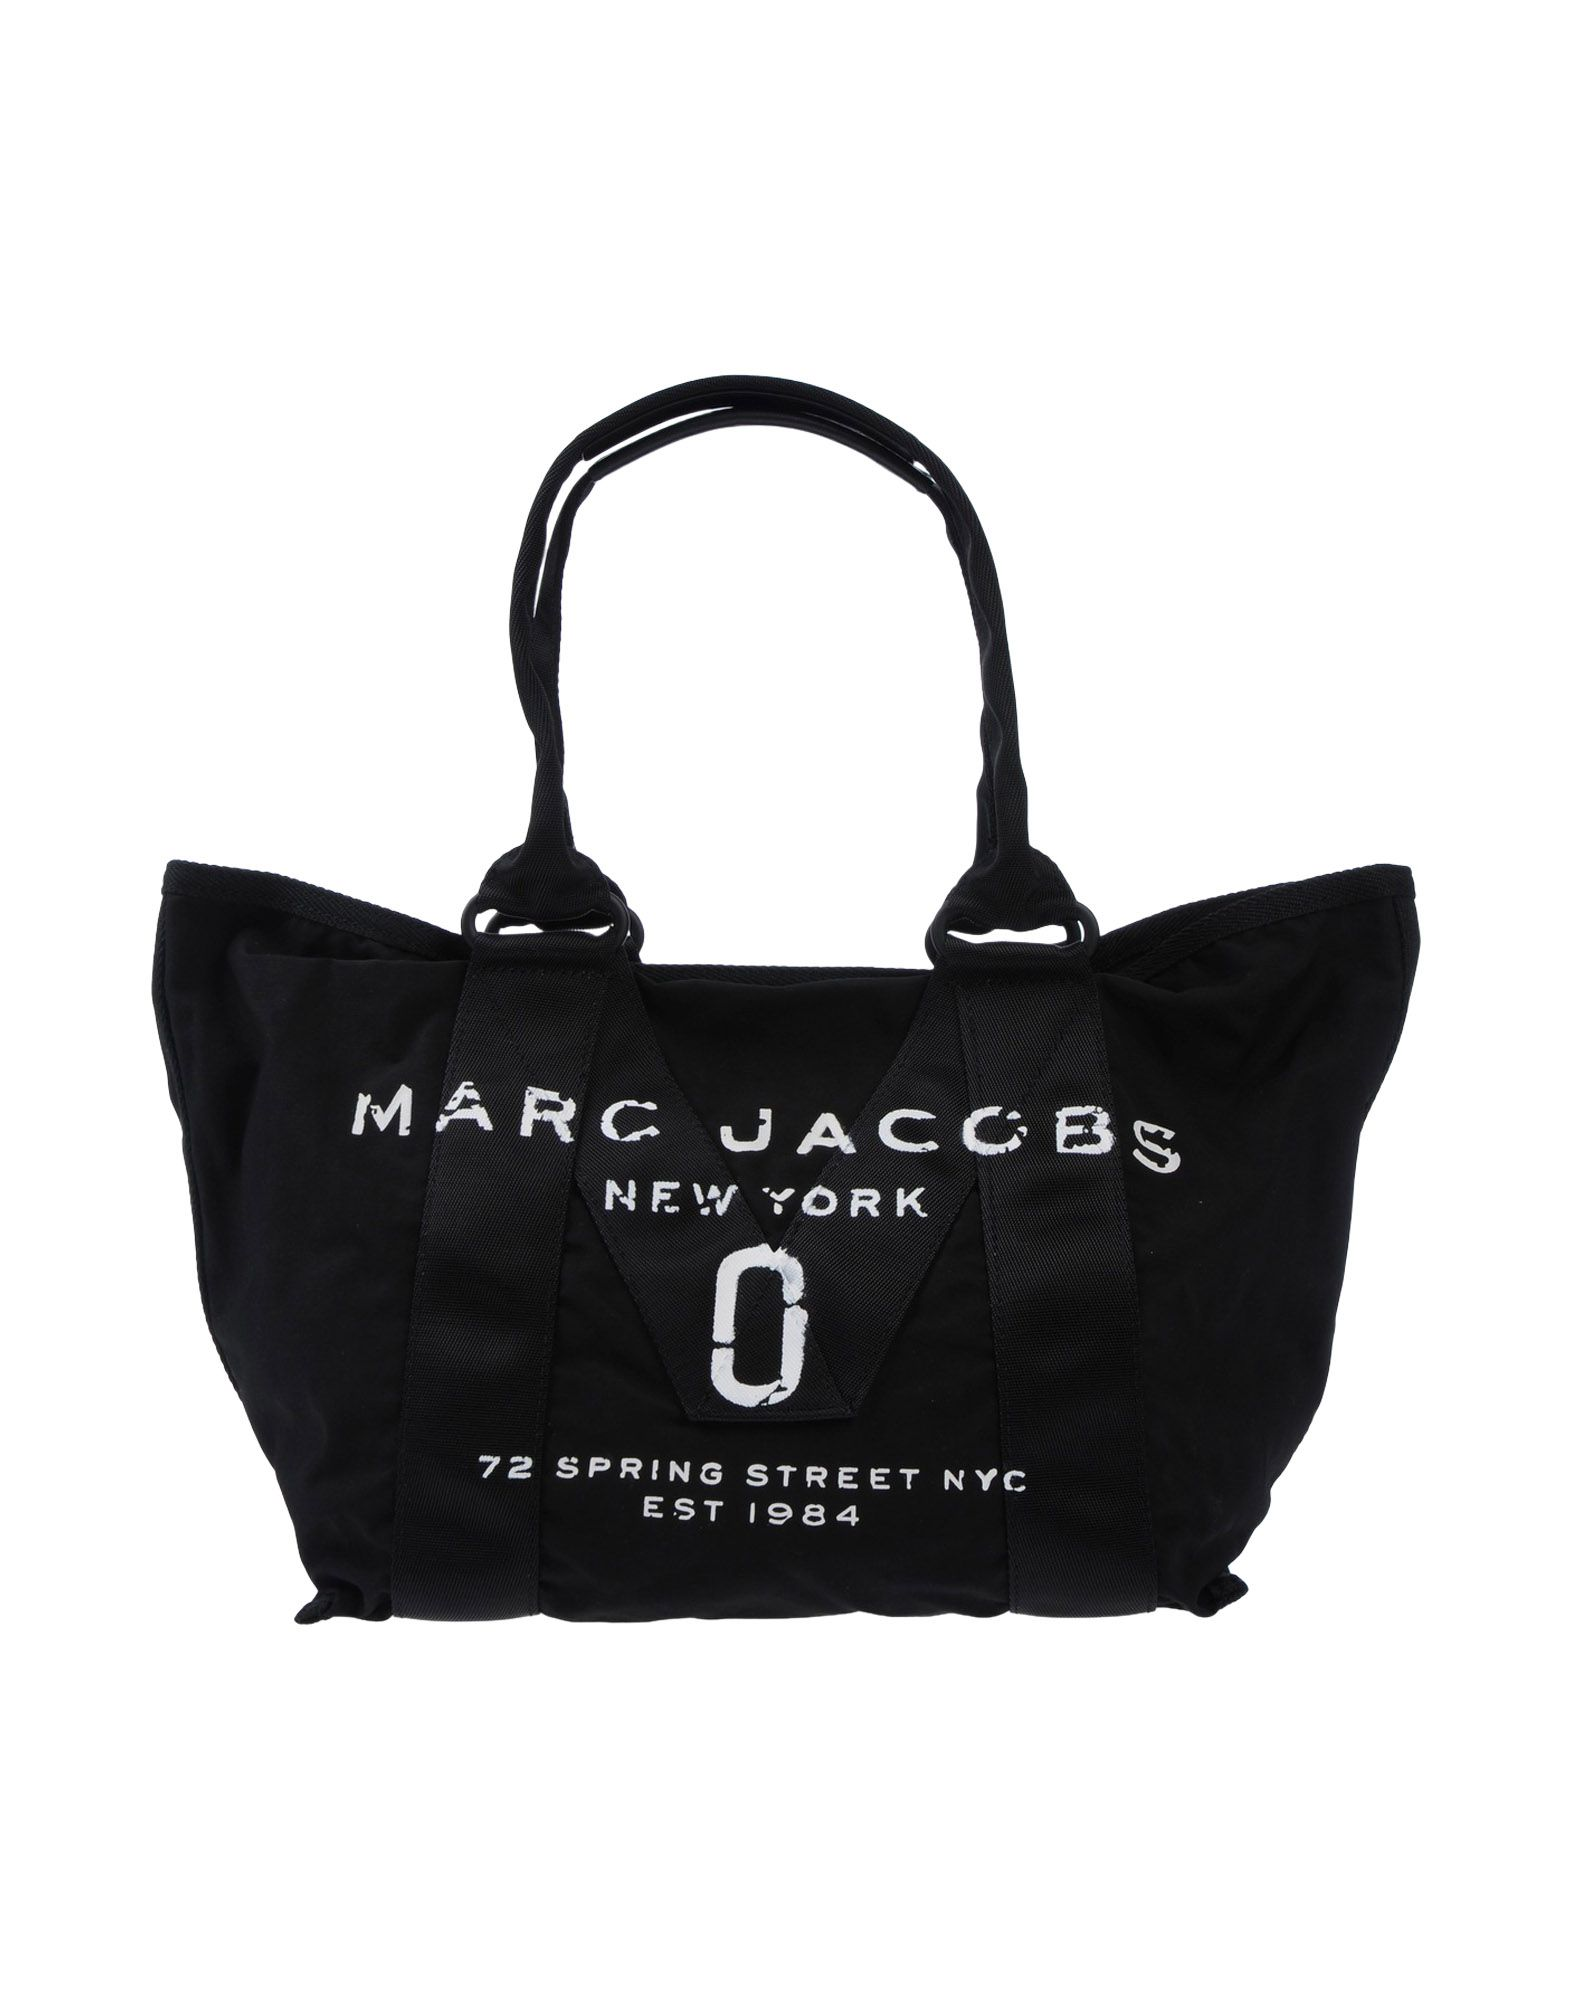 Marc Jacobs Bags   Accessories - Marc Jacobs Women - YOOX United Kingdom 02fa52fb9b1cd